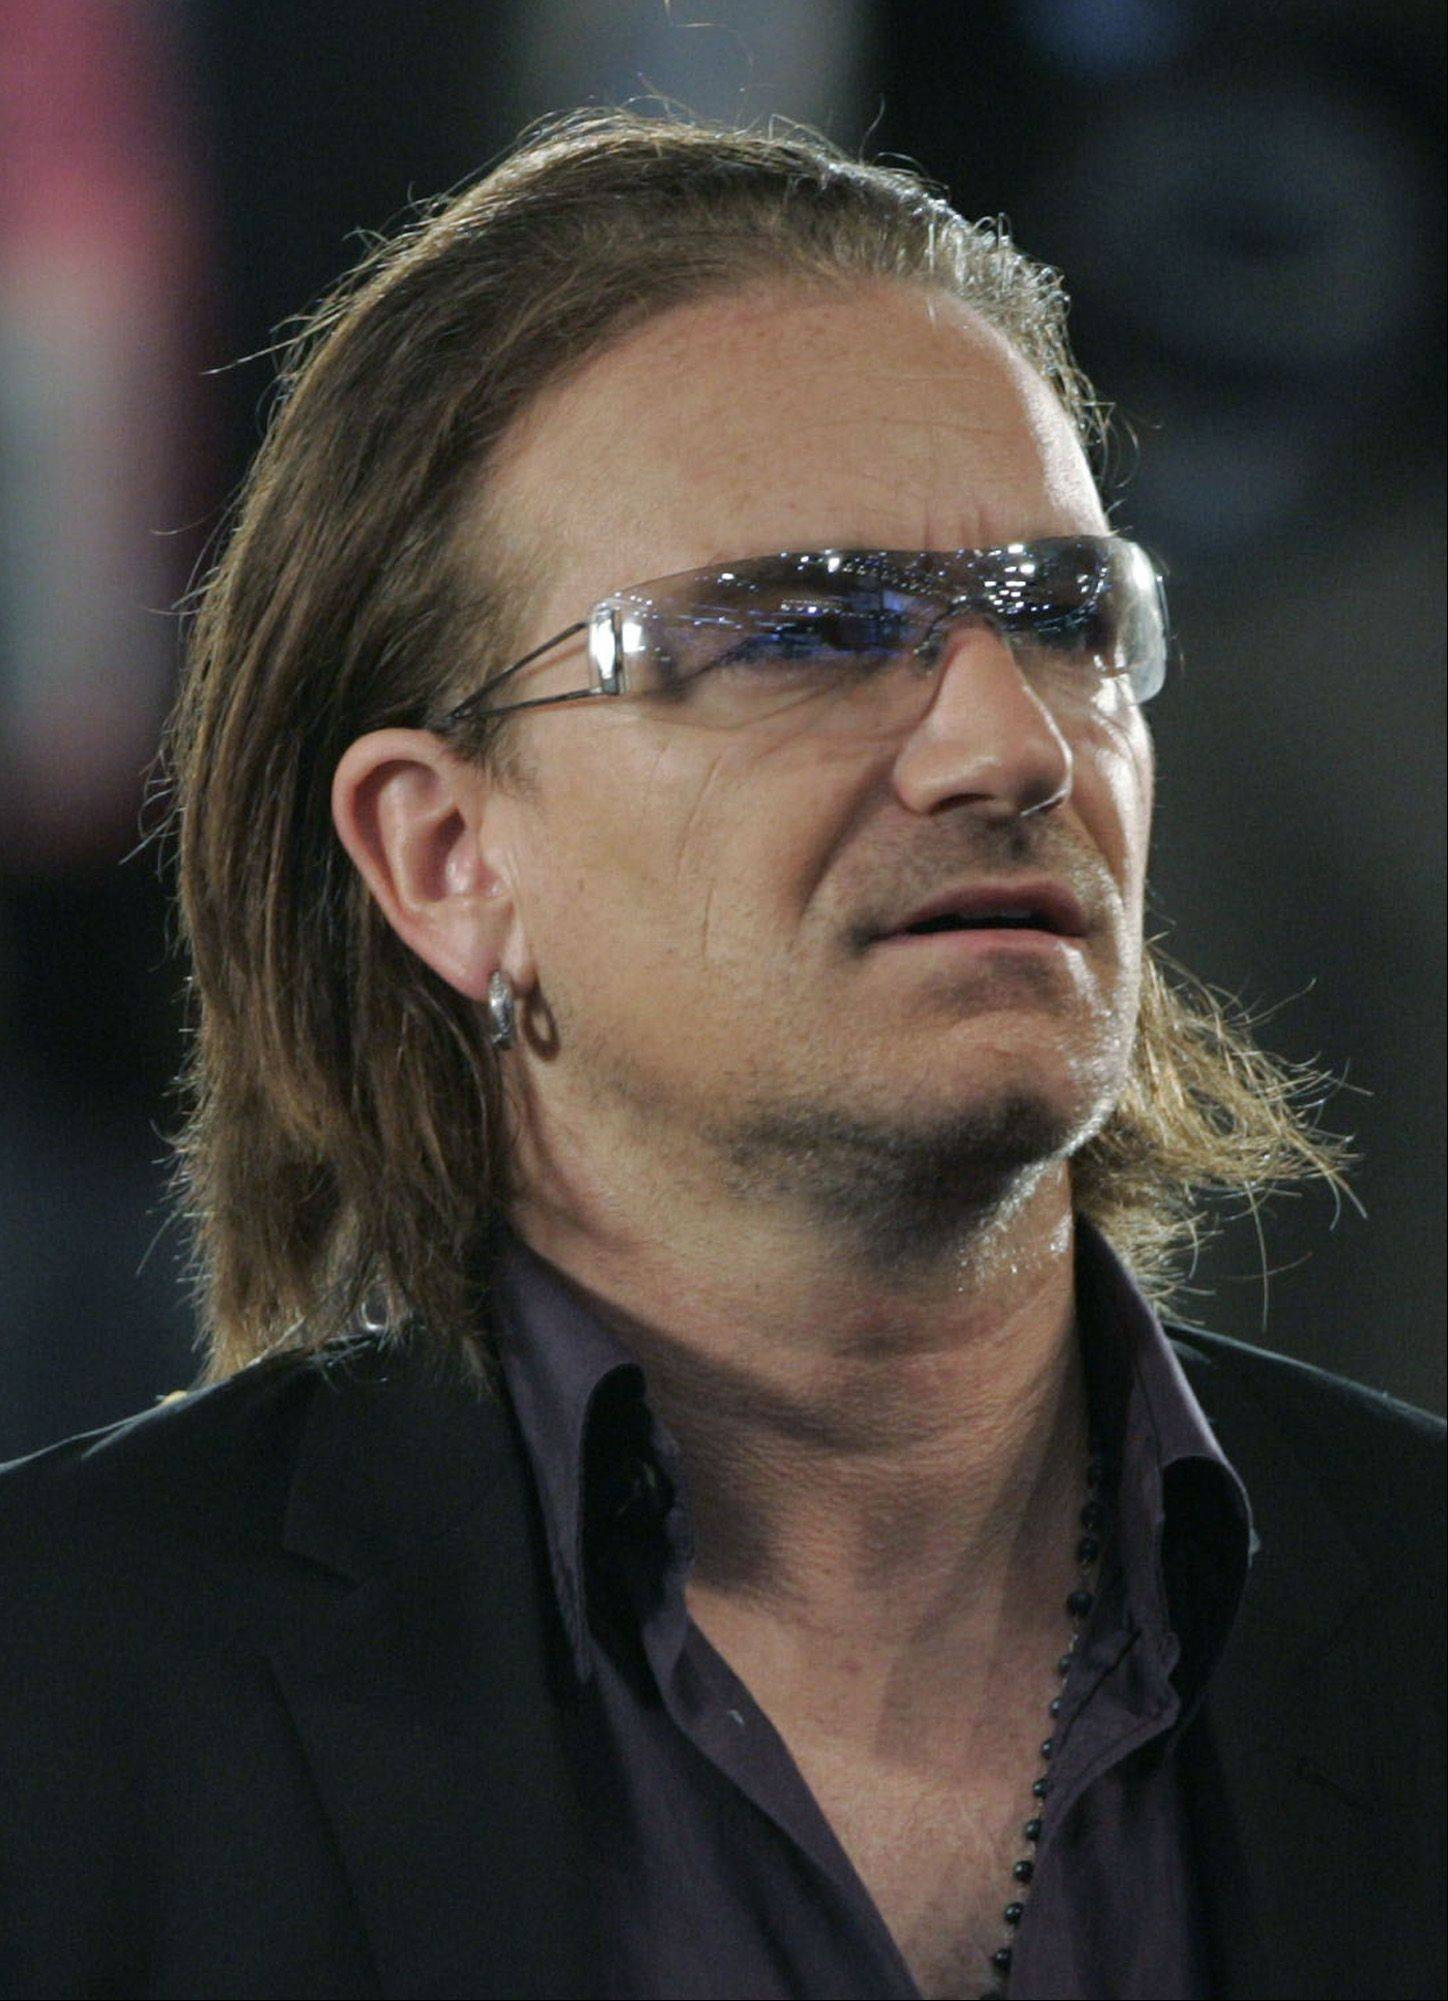 U2's lead singer and activist Bono listens to poet Maya Angelou speak Tuesday, July 27, 2004, at the FleetCenter in Boston during the Democratic National Convention. Bono sang at a private funeral for Susan Buffett, wife of billionaire investor Warren Buffett on Monday, Aug. 2, 2004.